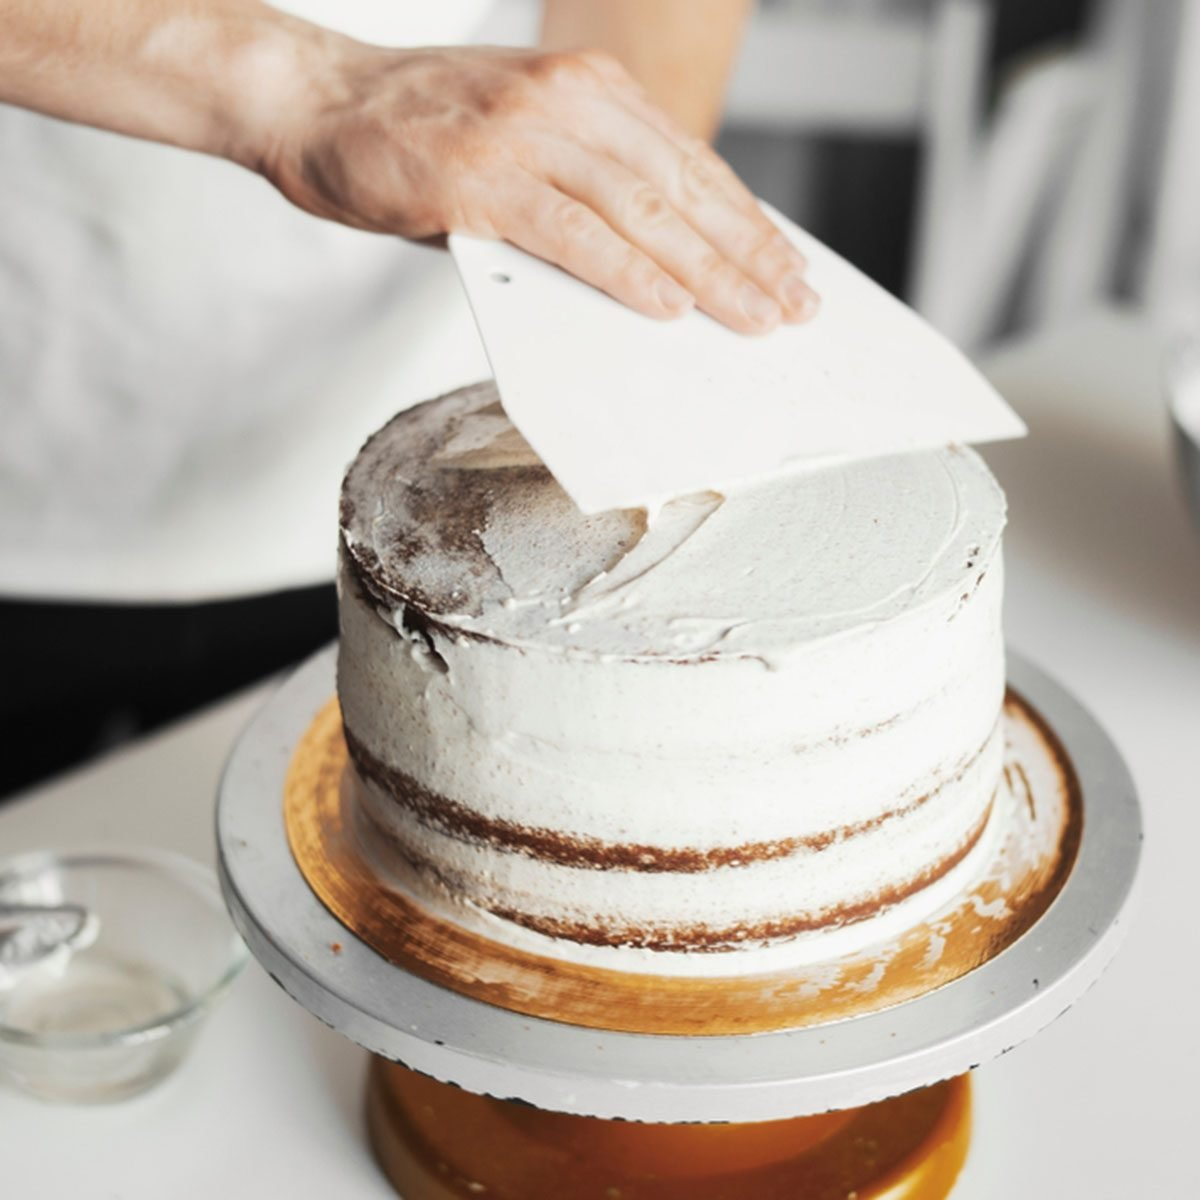 Close up of cook smearing butter cream on chocolate cake.; Shutterstock ID 1170976687; Job (TFH, TOH, RD, BNB, CWM, CM): Taste of Home